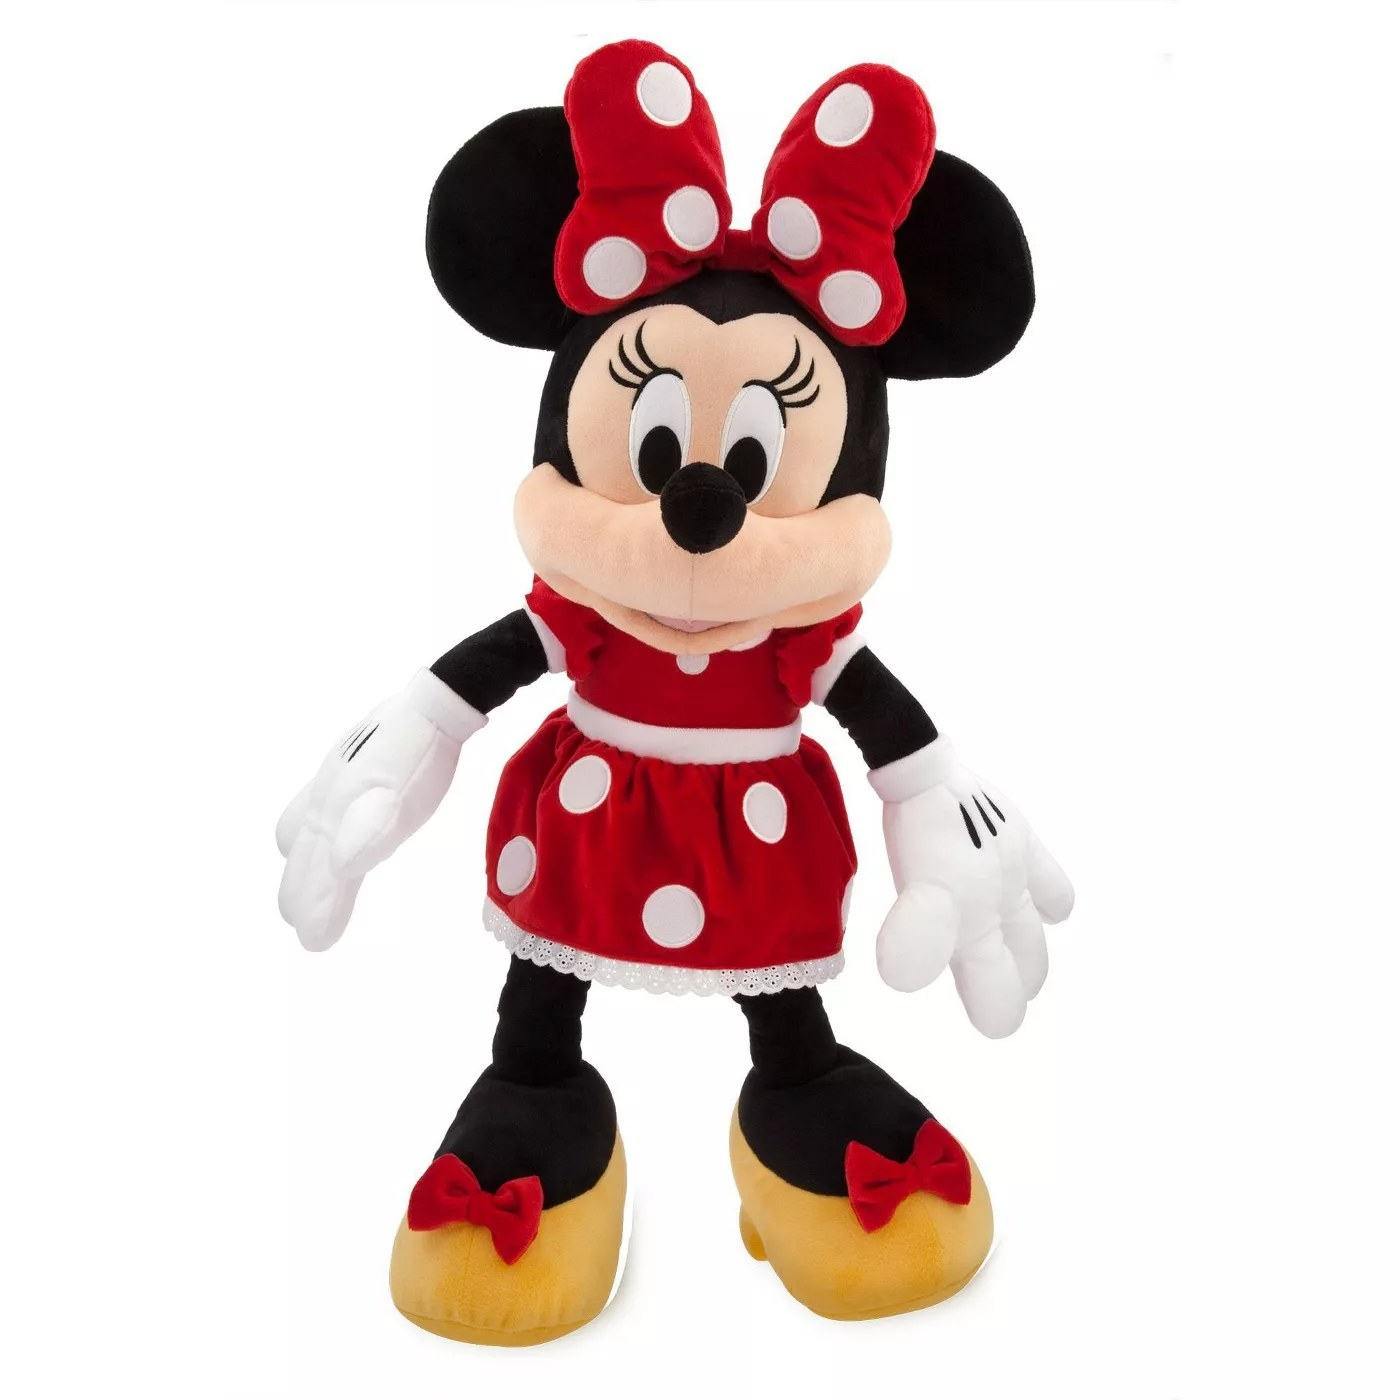 The Minnie Mouse doll